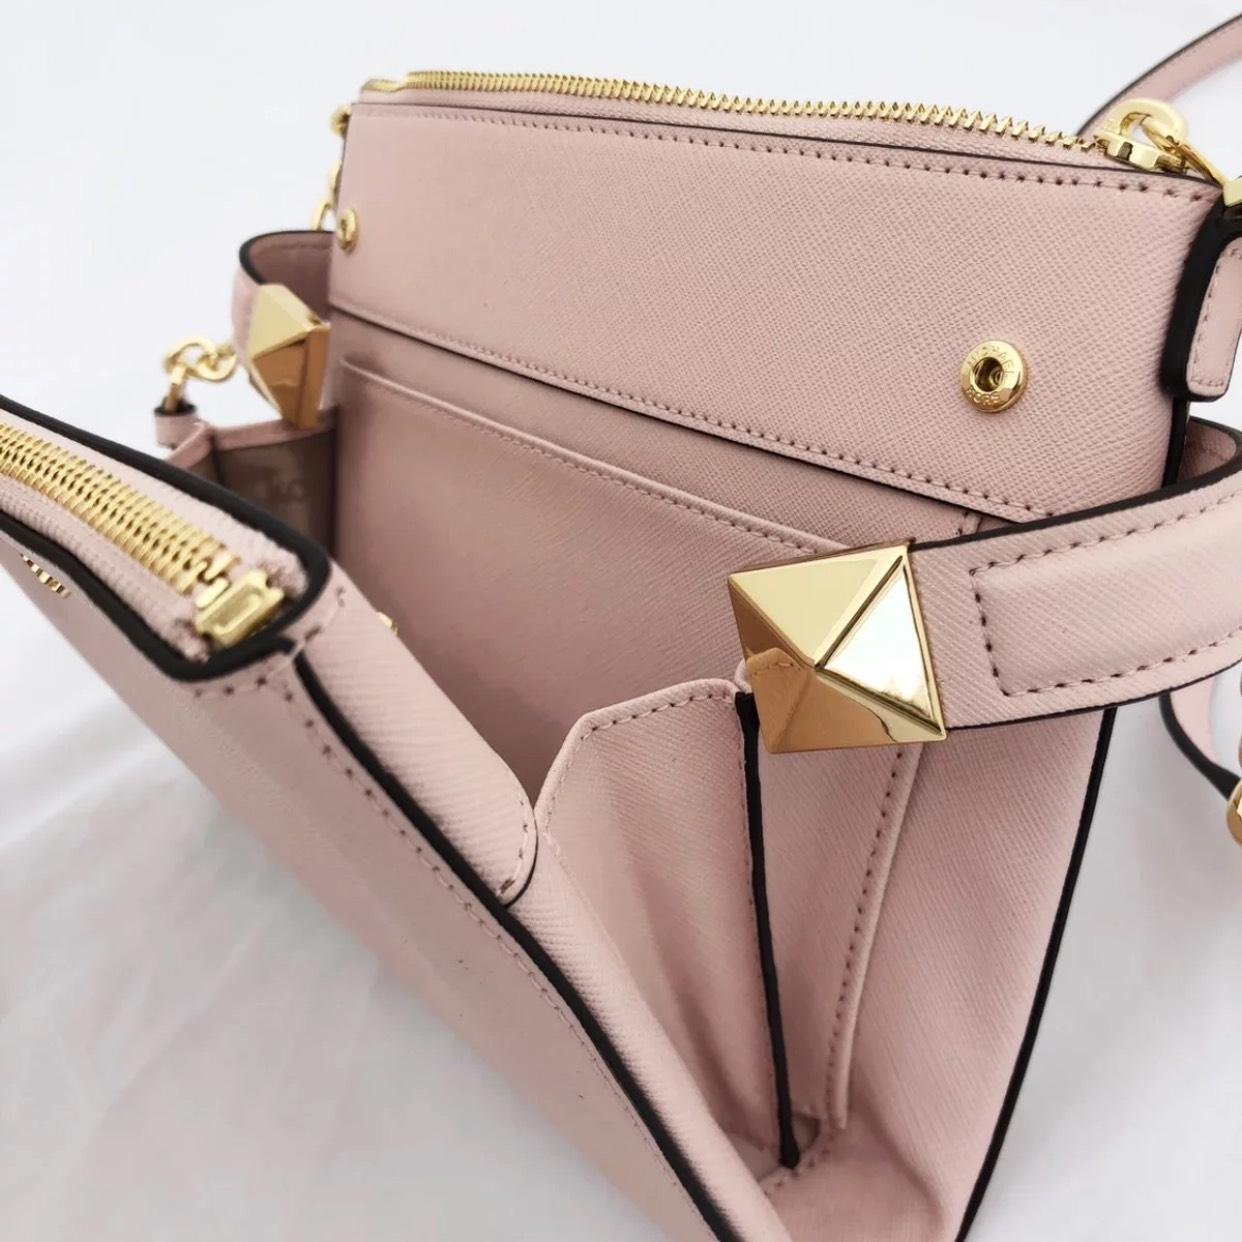 07fc9f0fc515 ... coupon for michael kors karla large pink leather cross body bag tradesy  07e41 6393f